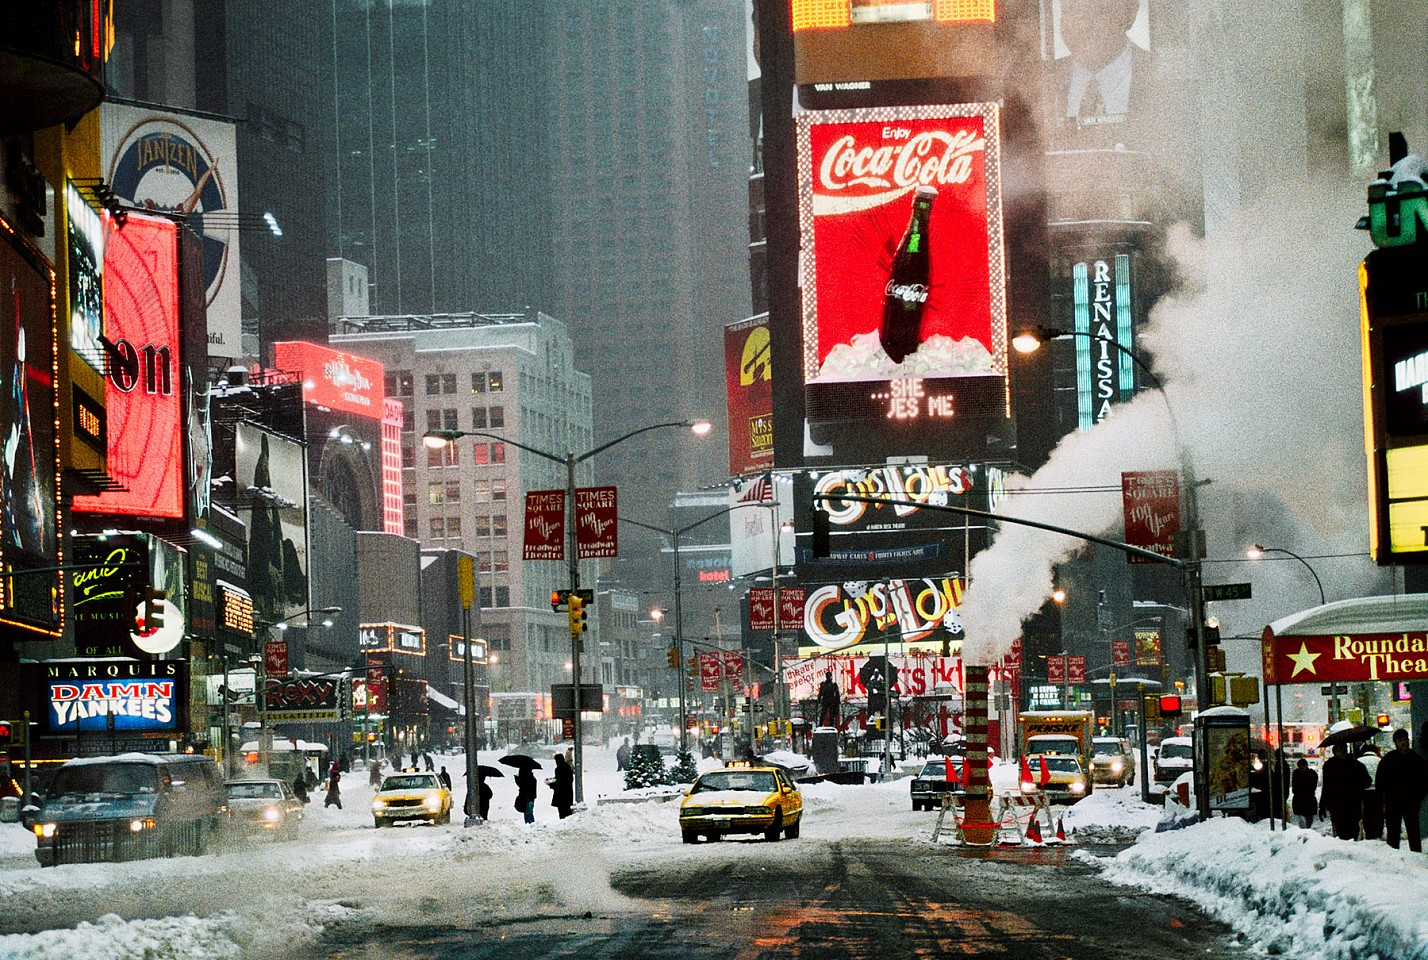 Steve McCurry ,   Times Square in Winter, New York, NY  ,  1994     FujiFlex Crystal Archive Print ,  40 x 60 in. (Inquire for additional sizes)     USA-10083